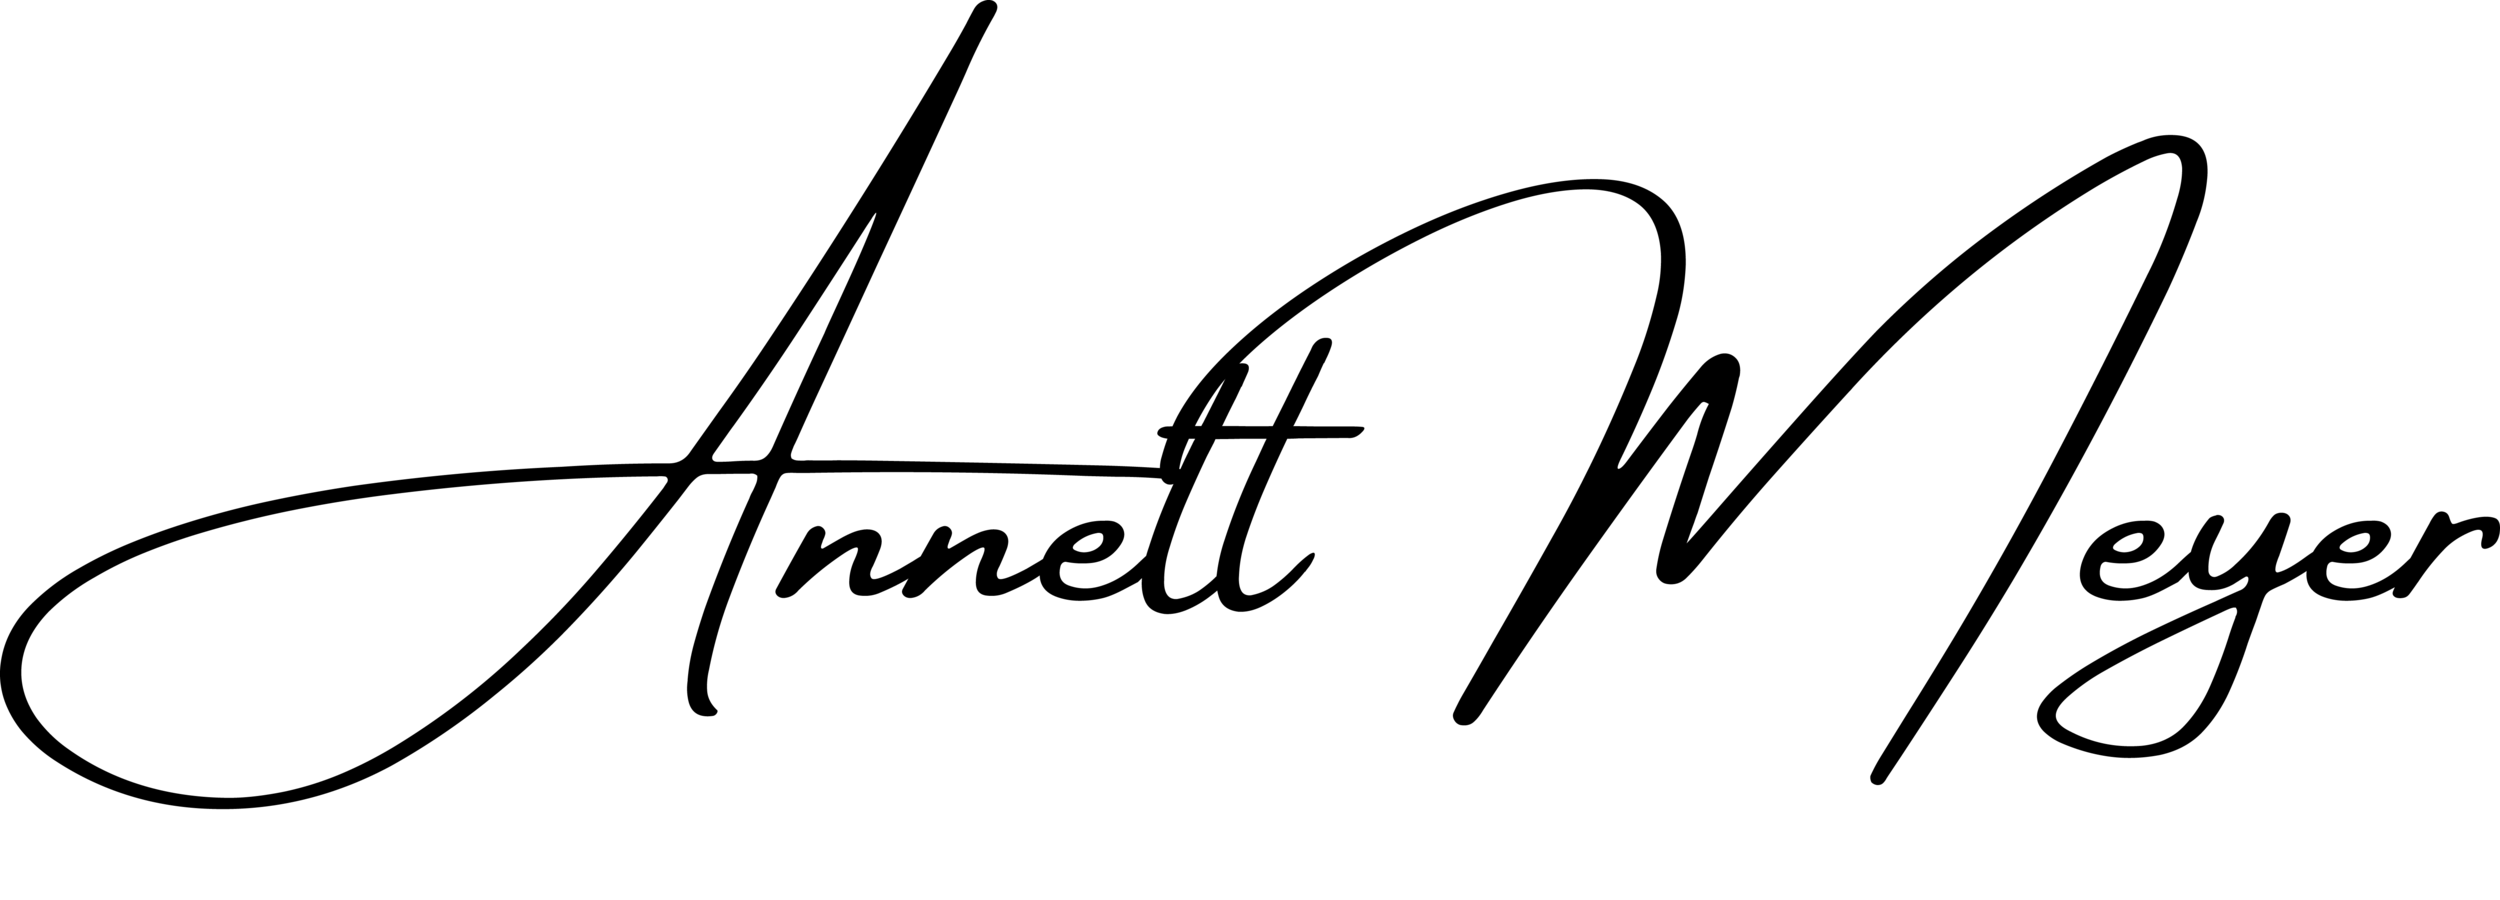 annet_png_logo signature.png